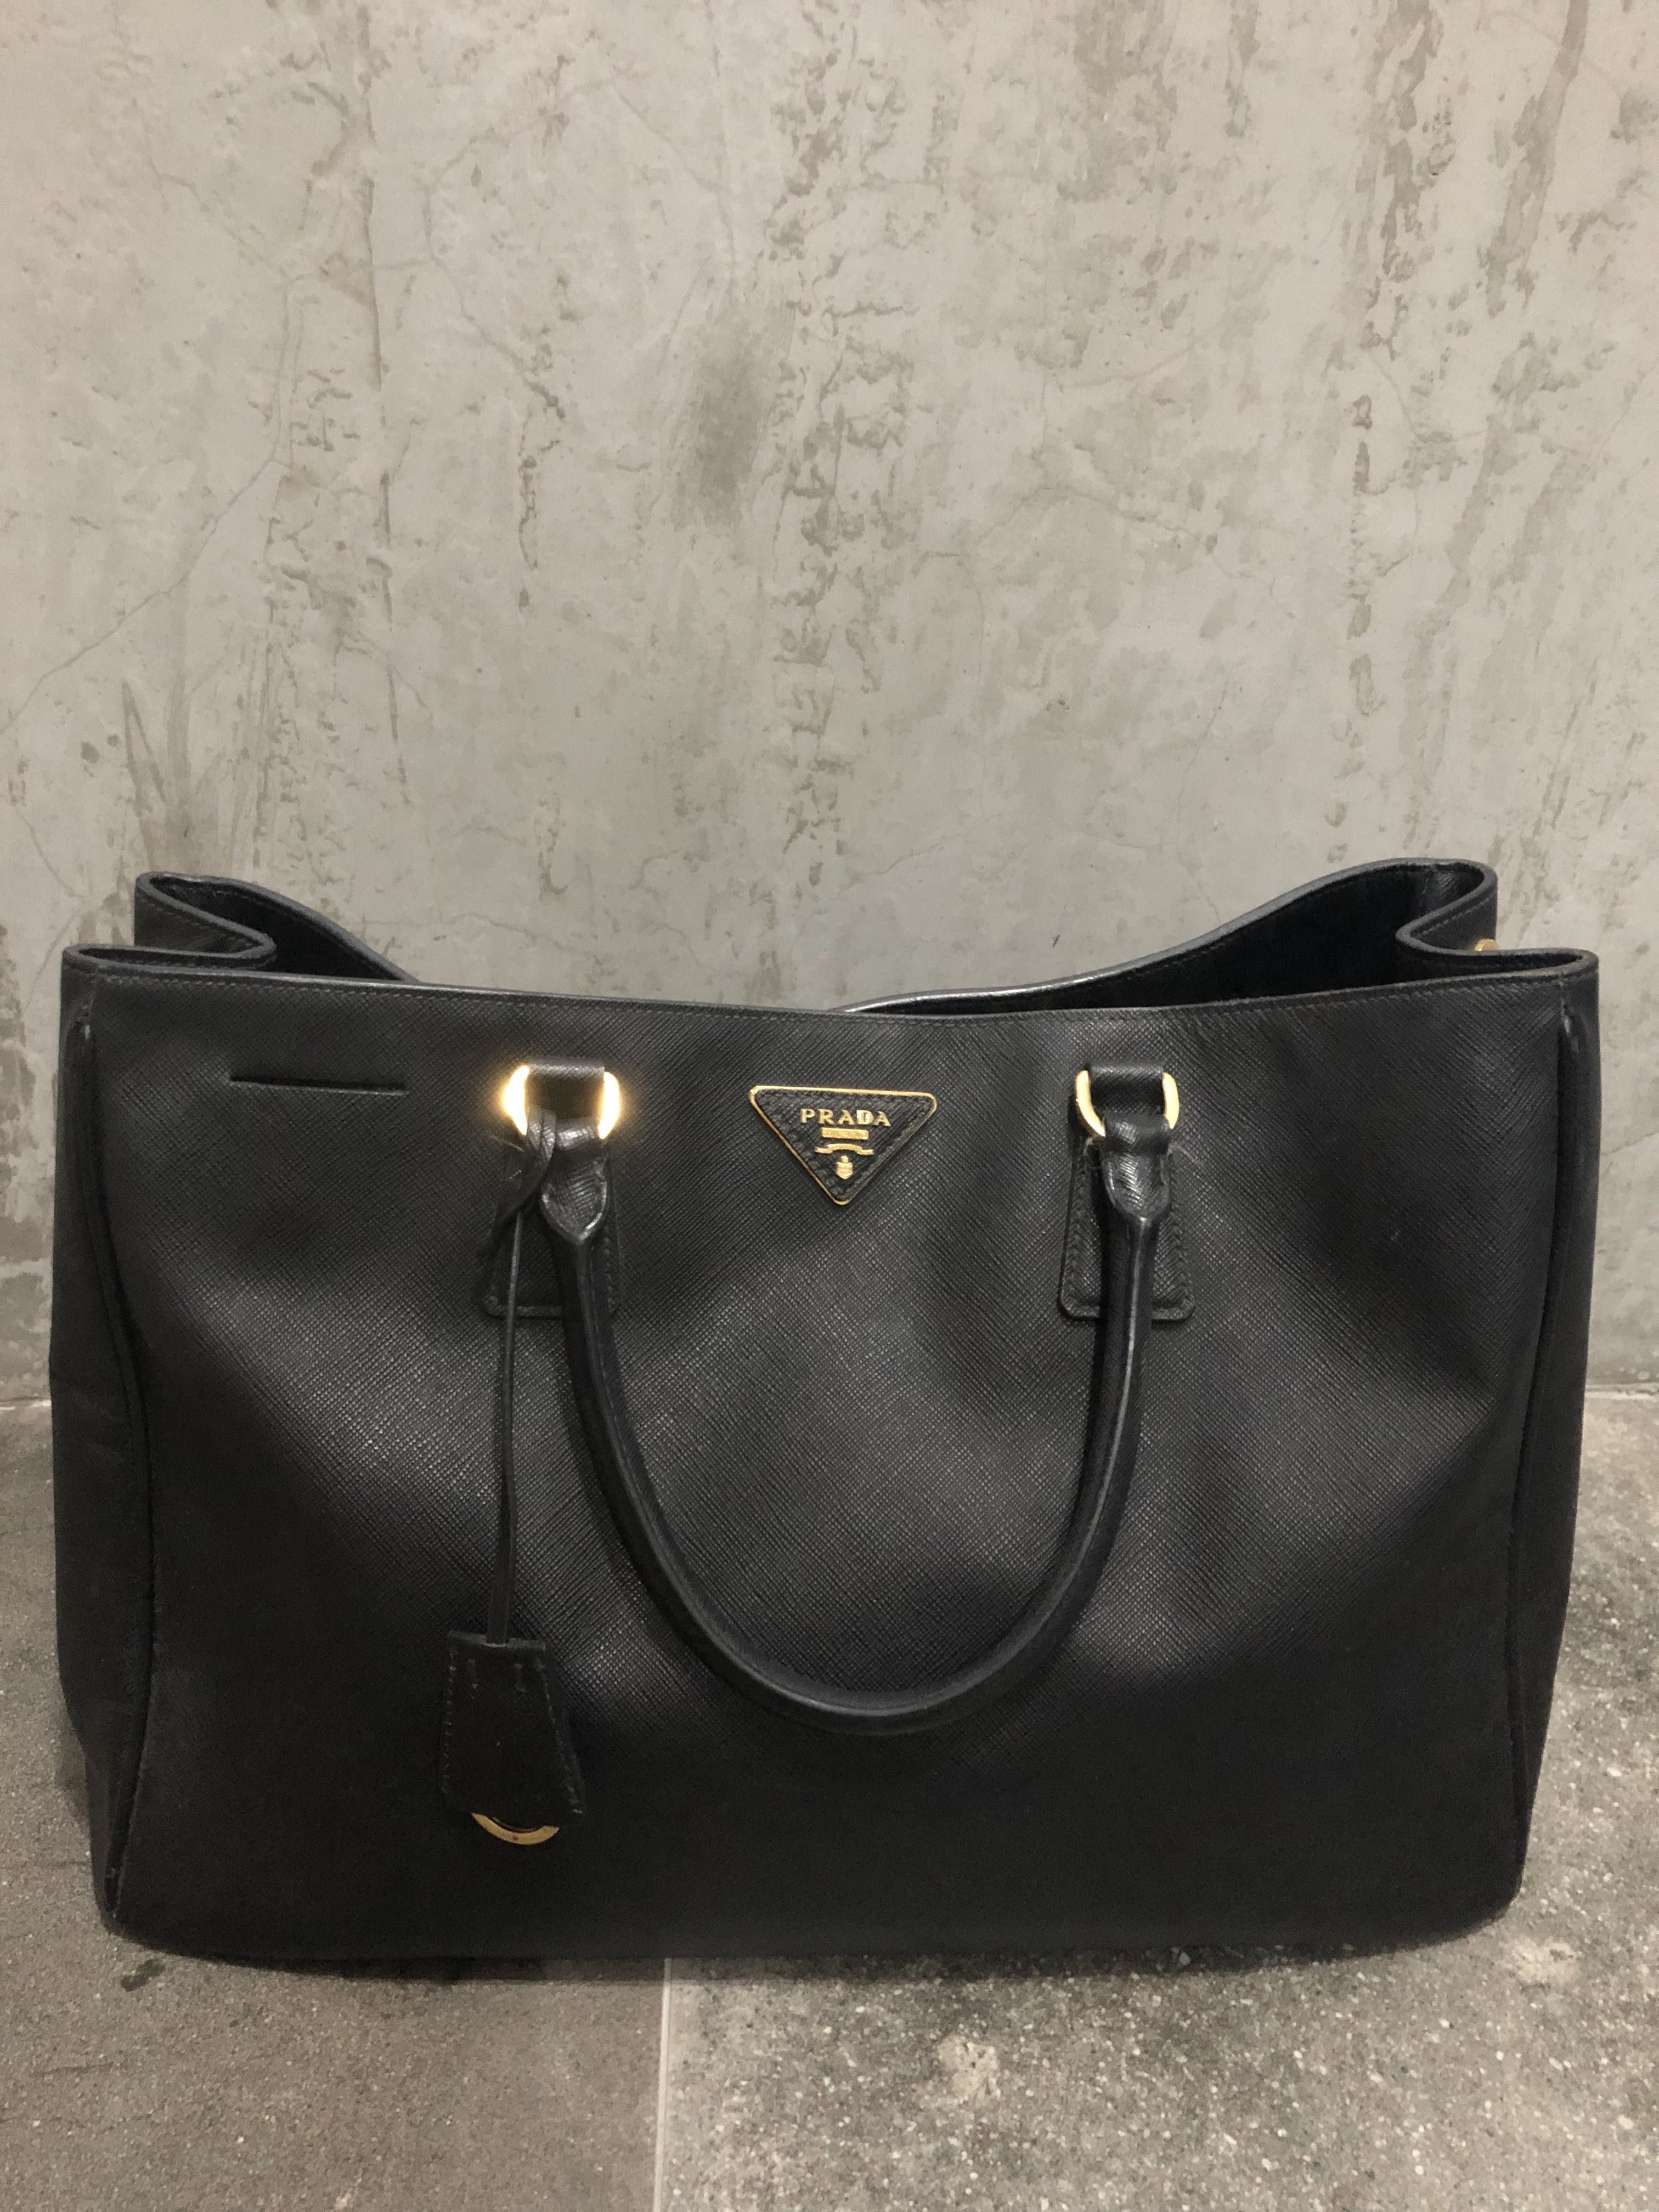 f0e2c31c887402 AUTHENTIC Prada Saffiano Lux Black Leather Tote BN1844, Women's Fashion,  Bags & Wallets on Carousell